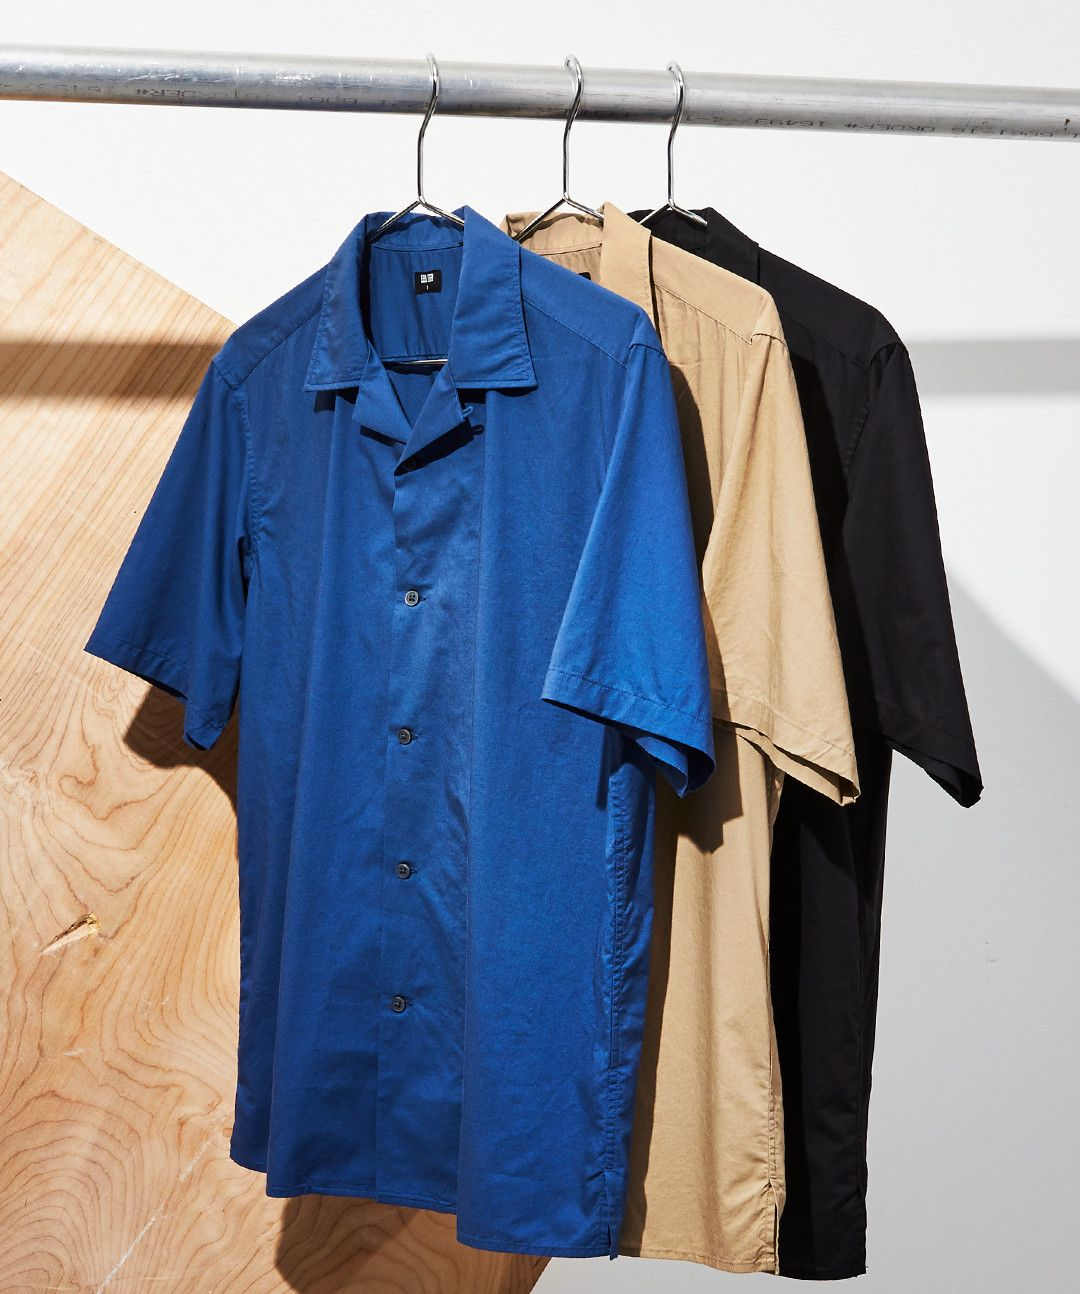 Uniqlo's $30 Camp-Collar Shirt Will Transform Your Entire Summer Wardrobe